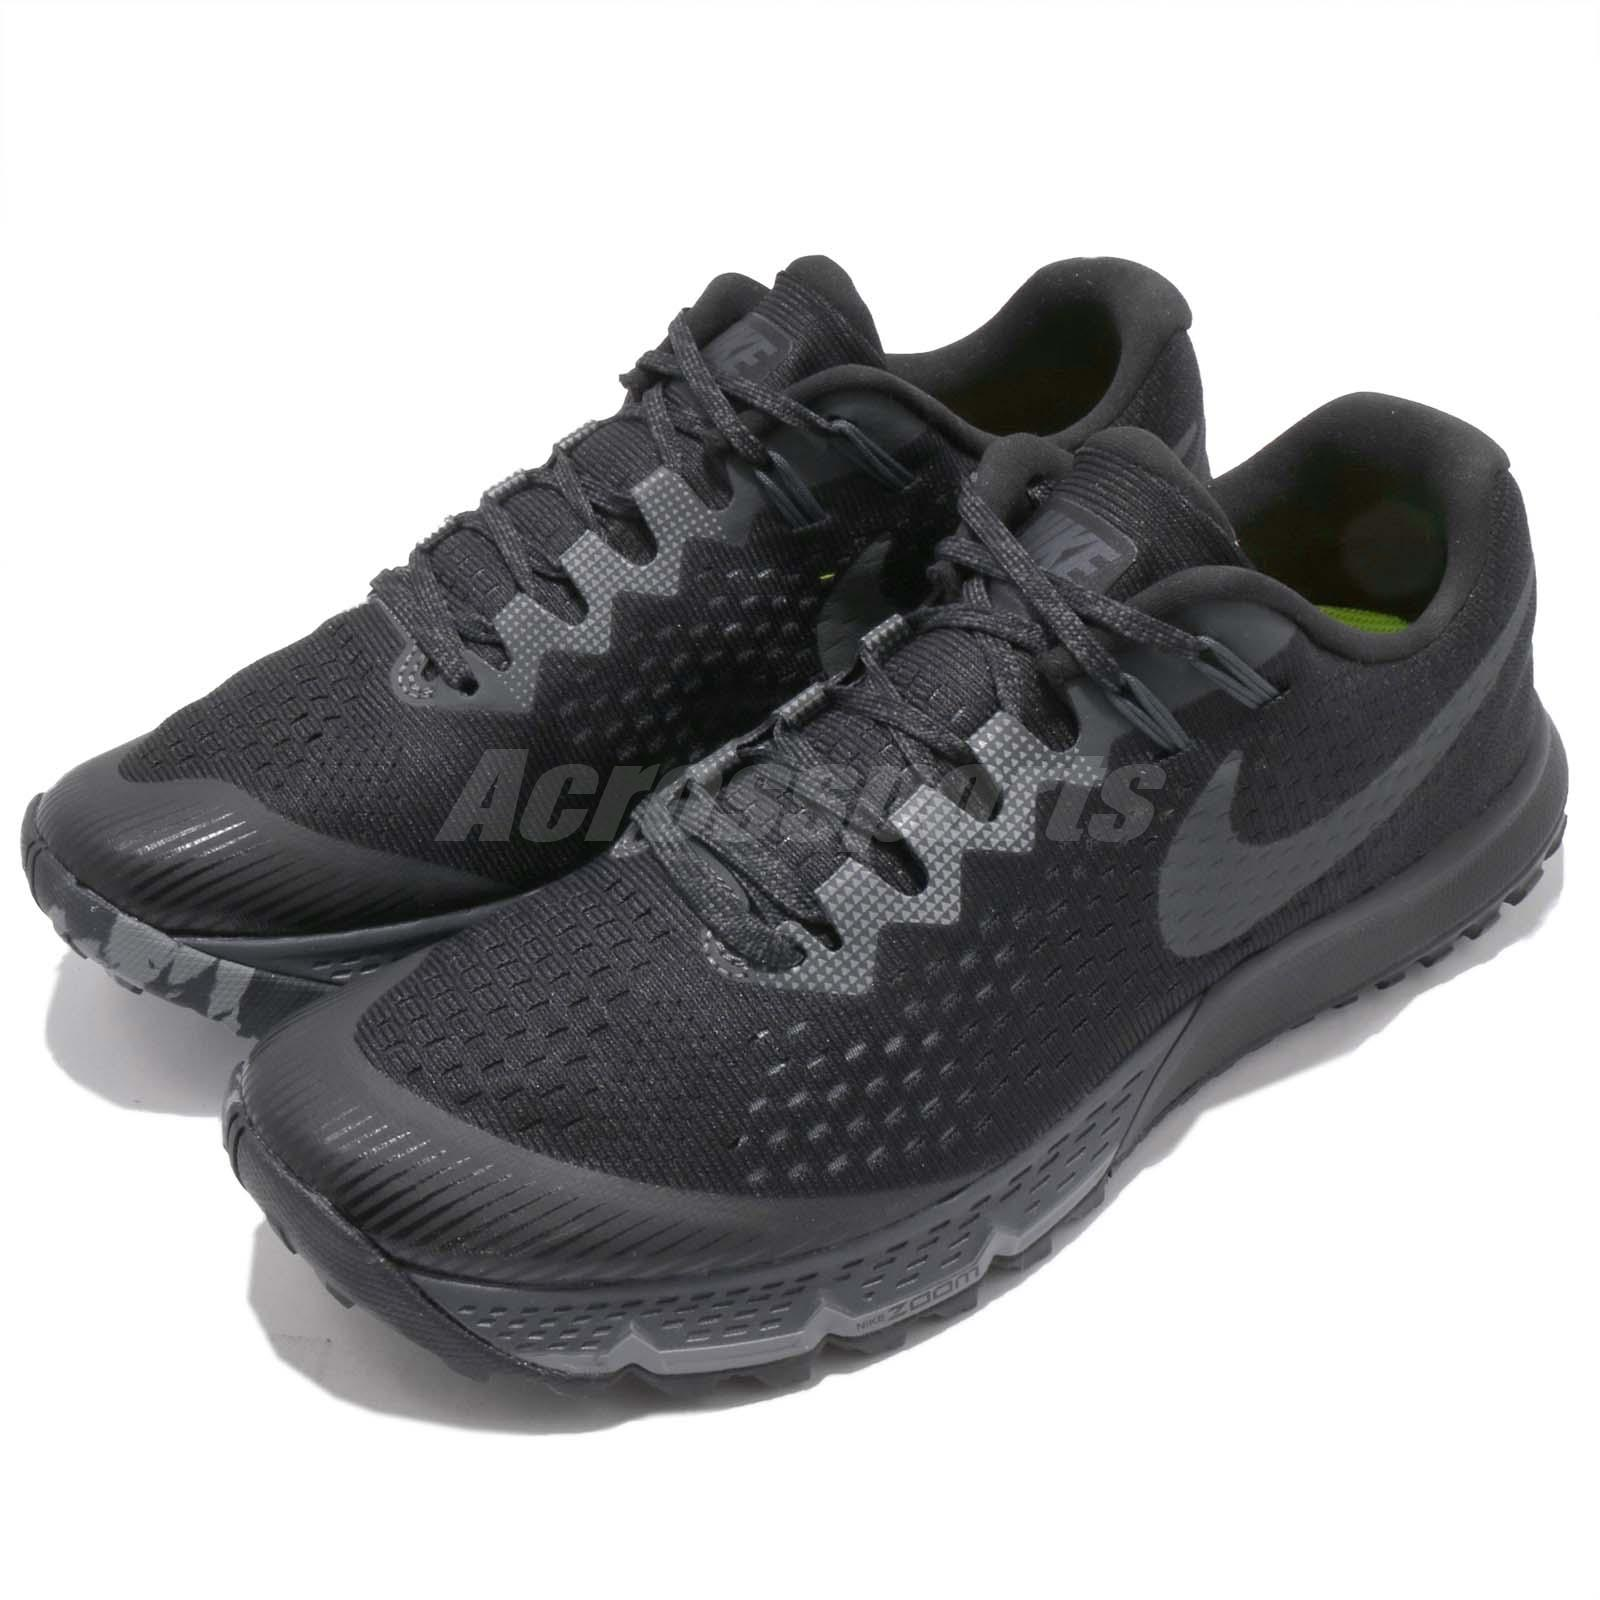 3dcf1269bb1a3 Details about Nike Air Zoom Terra Kiger 4 IV Black Men Trail Running Shoes  Sneakers 880563-010